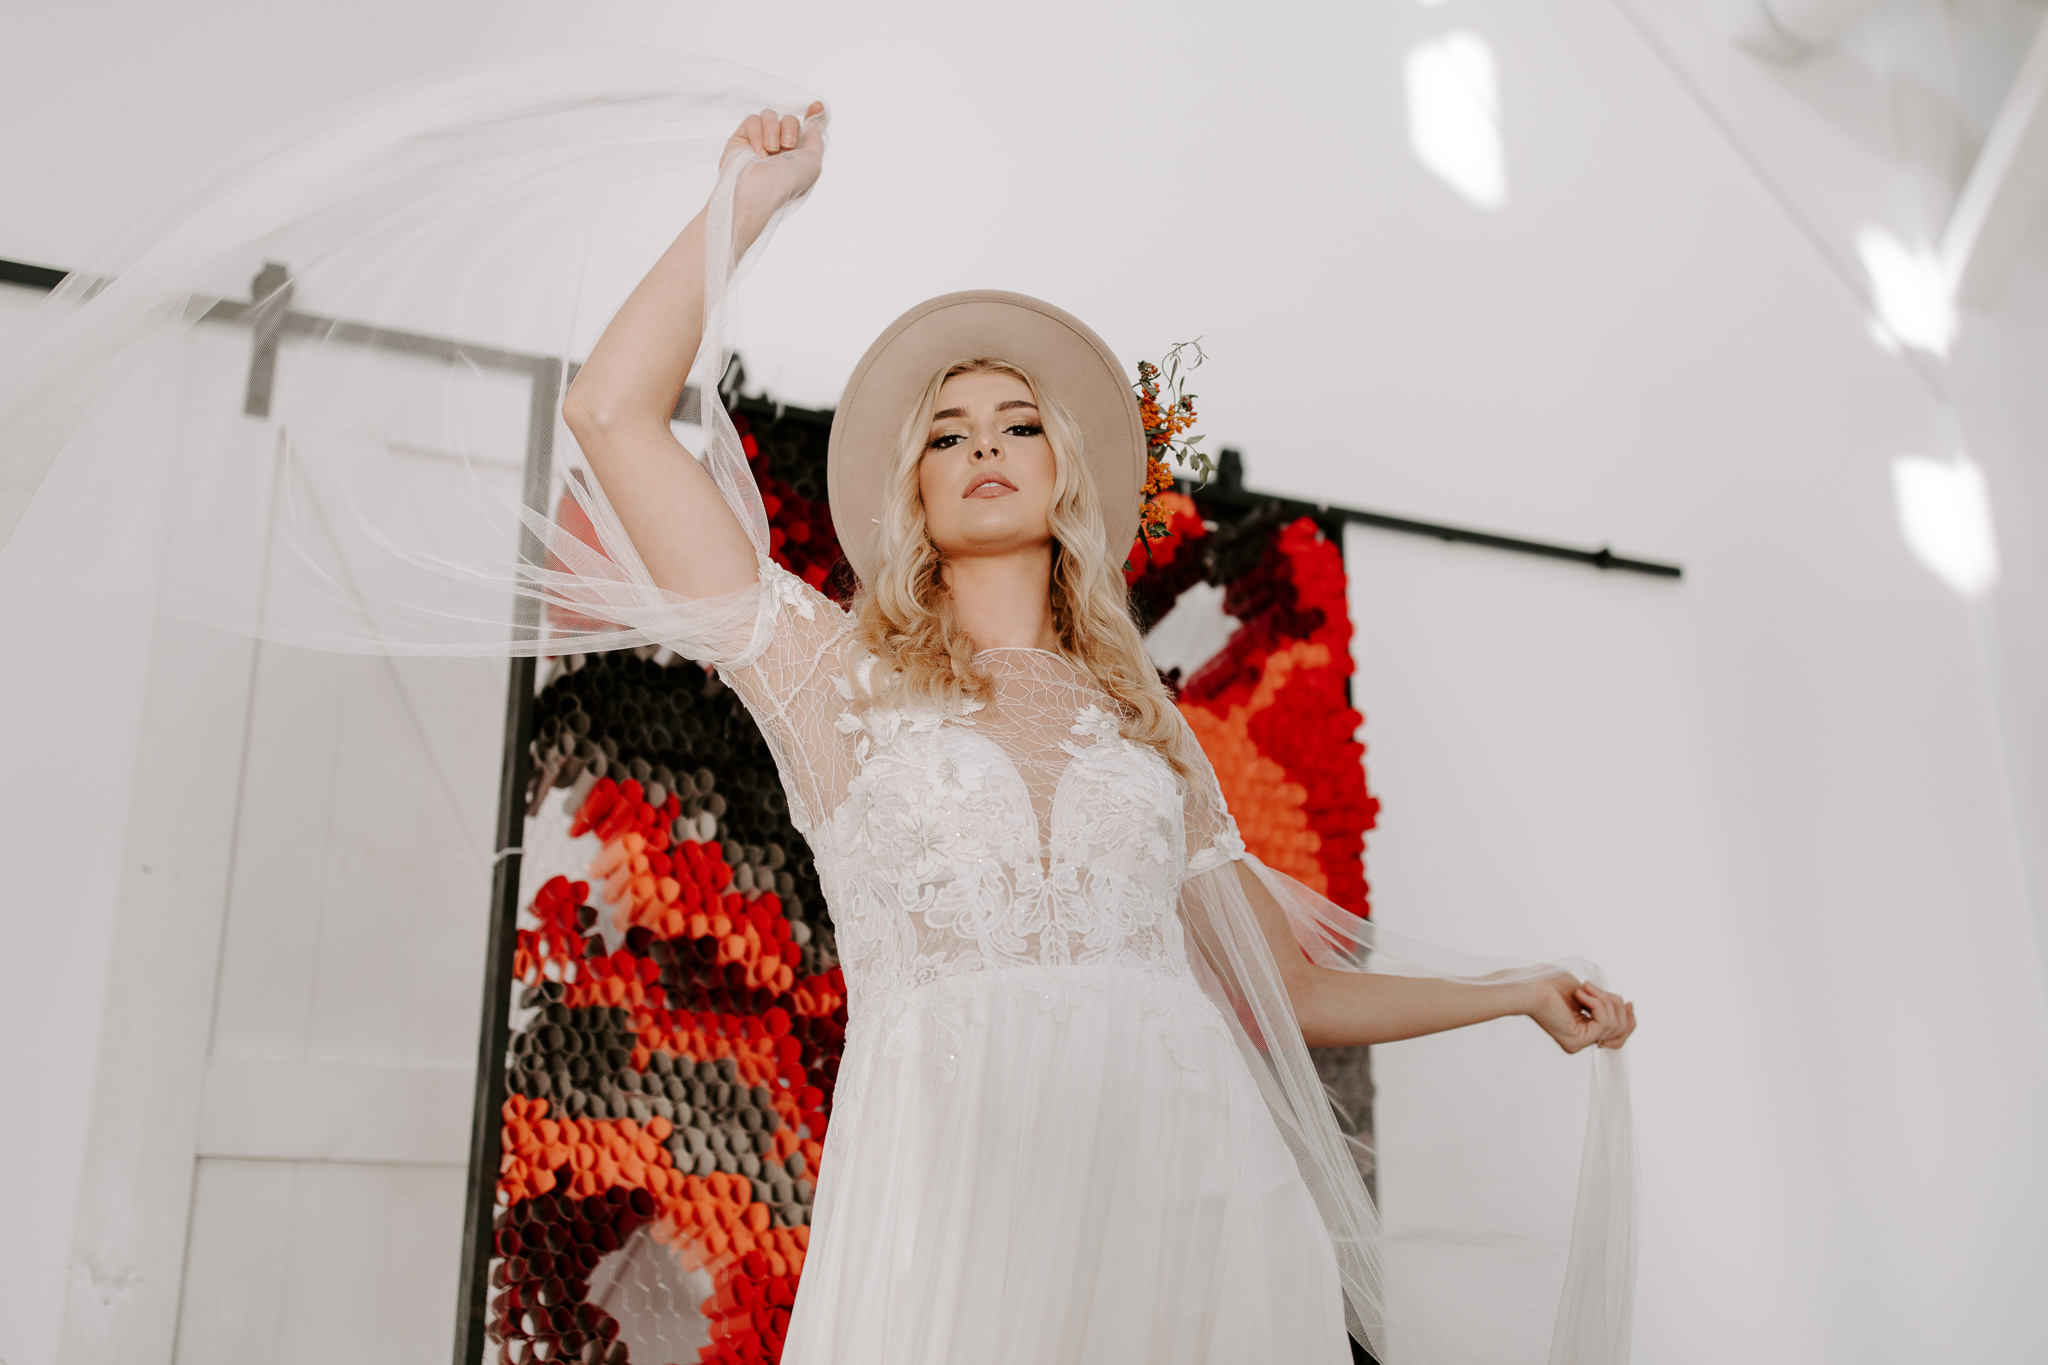 Modern bride with white walls and clean aesthetic, bridal dress with sleeves